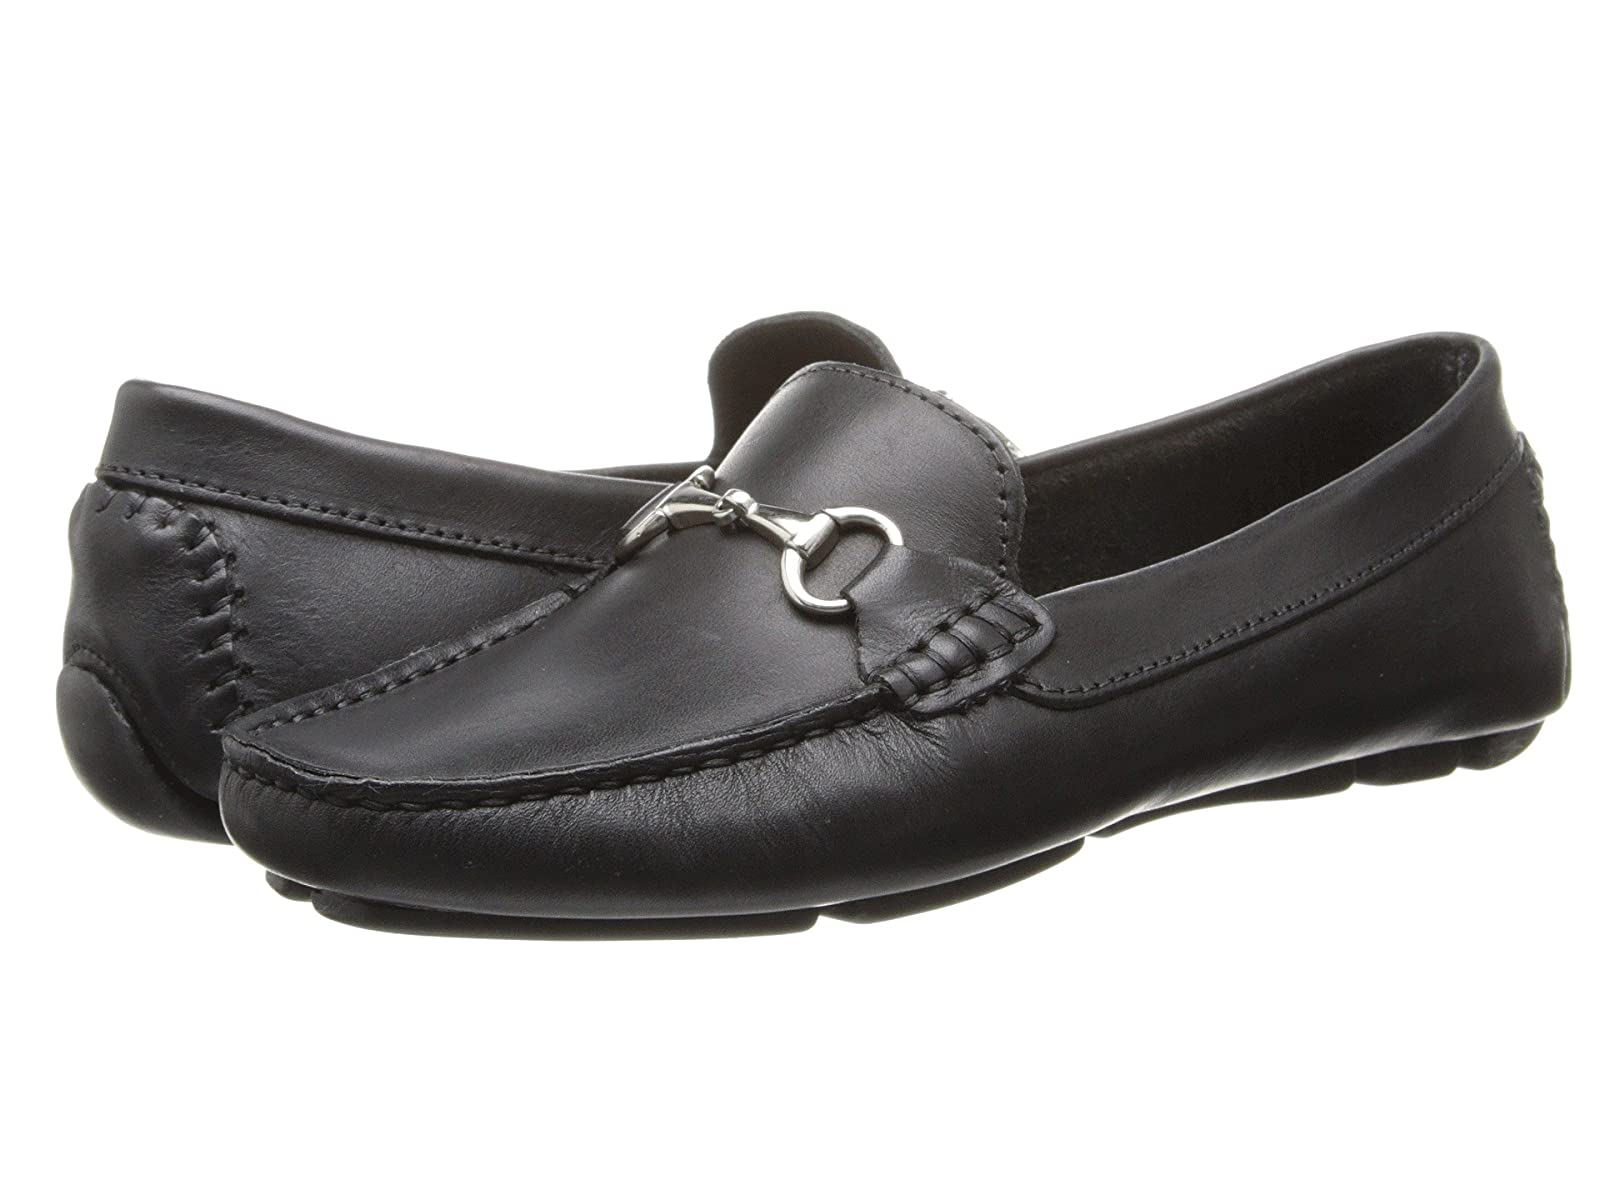 Massimo Matteo Driver With BitAtmospheric grades have affordable shoes